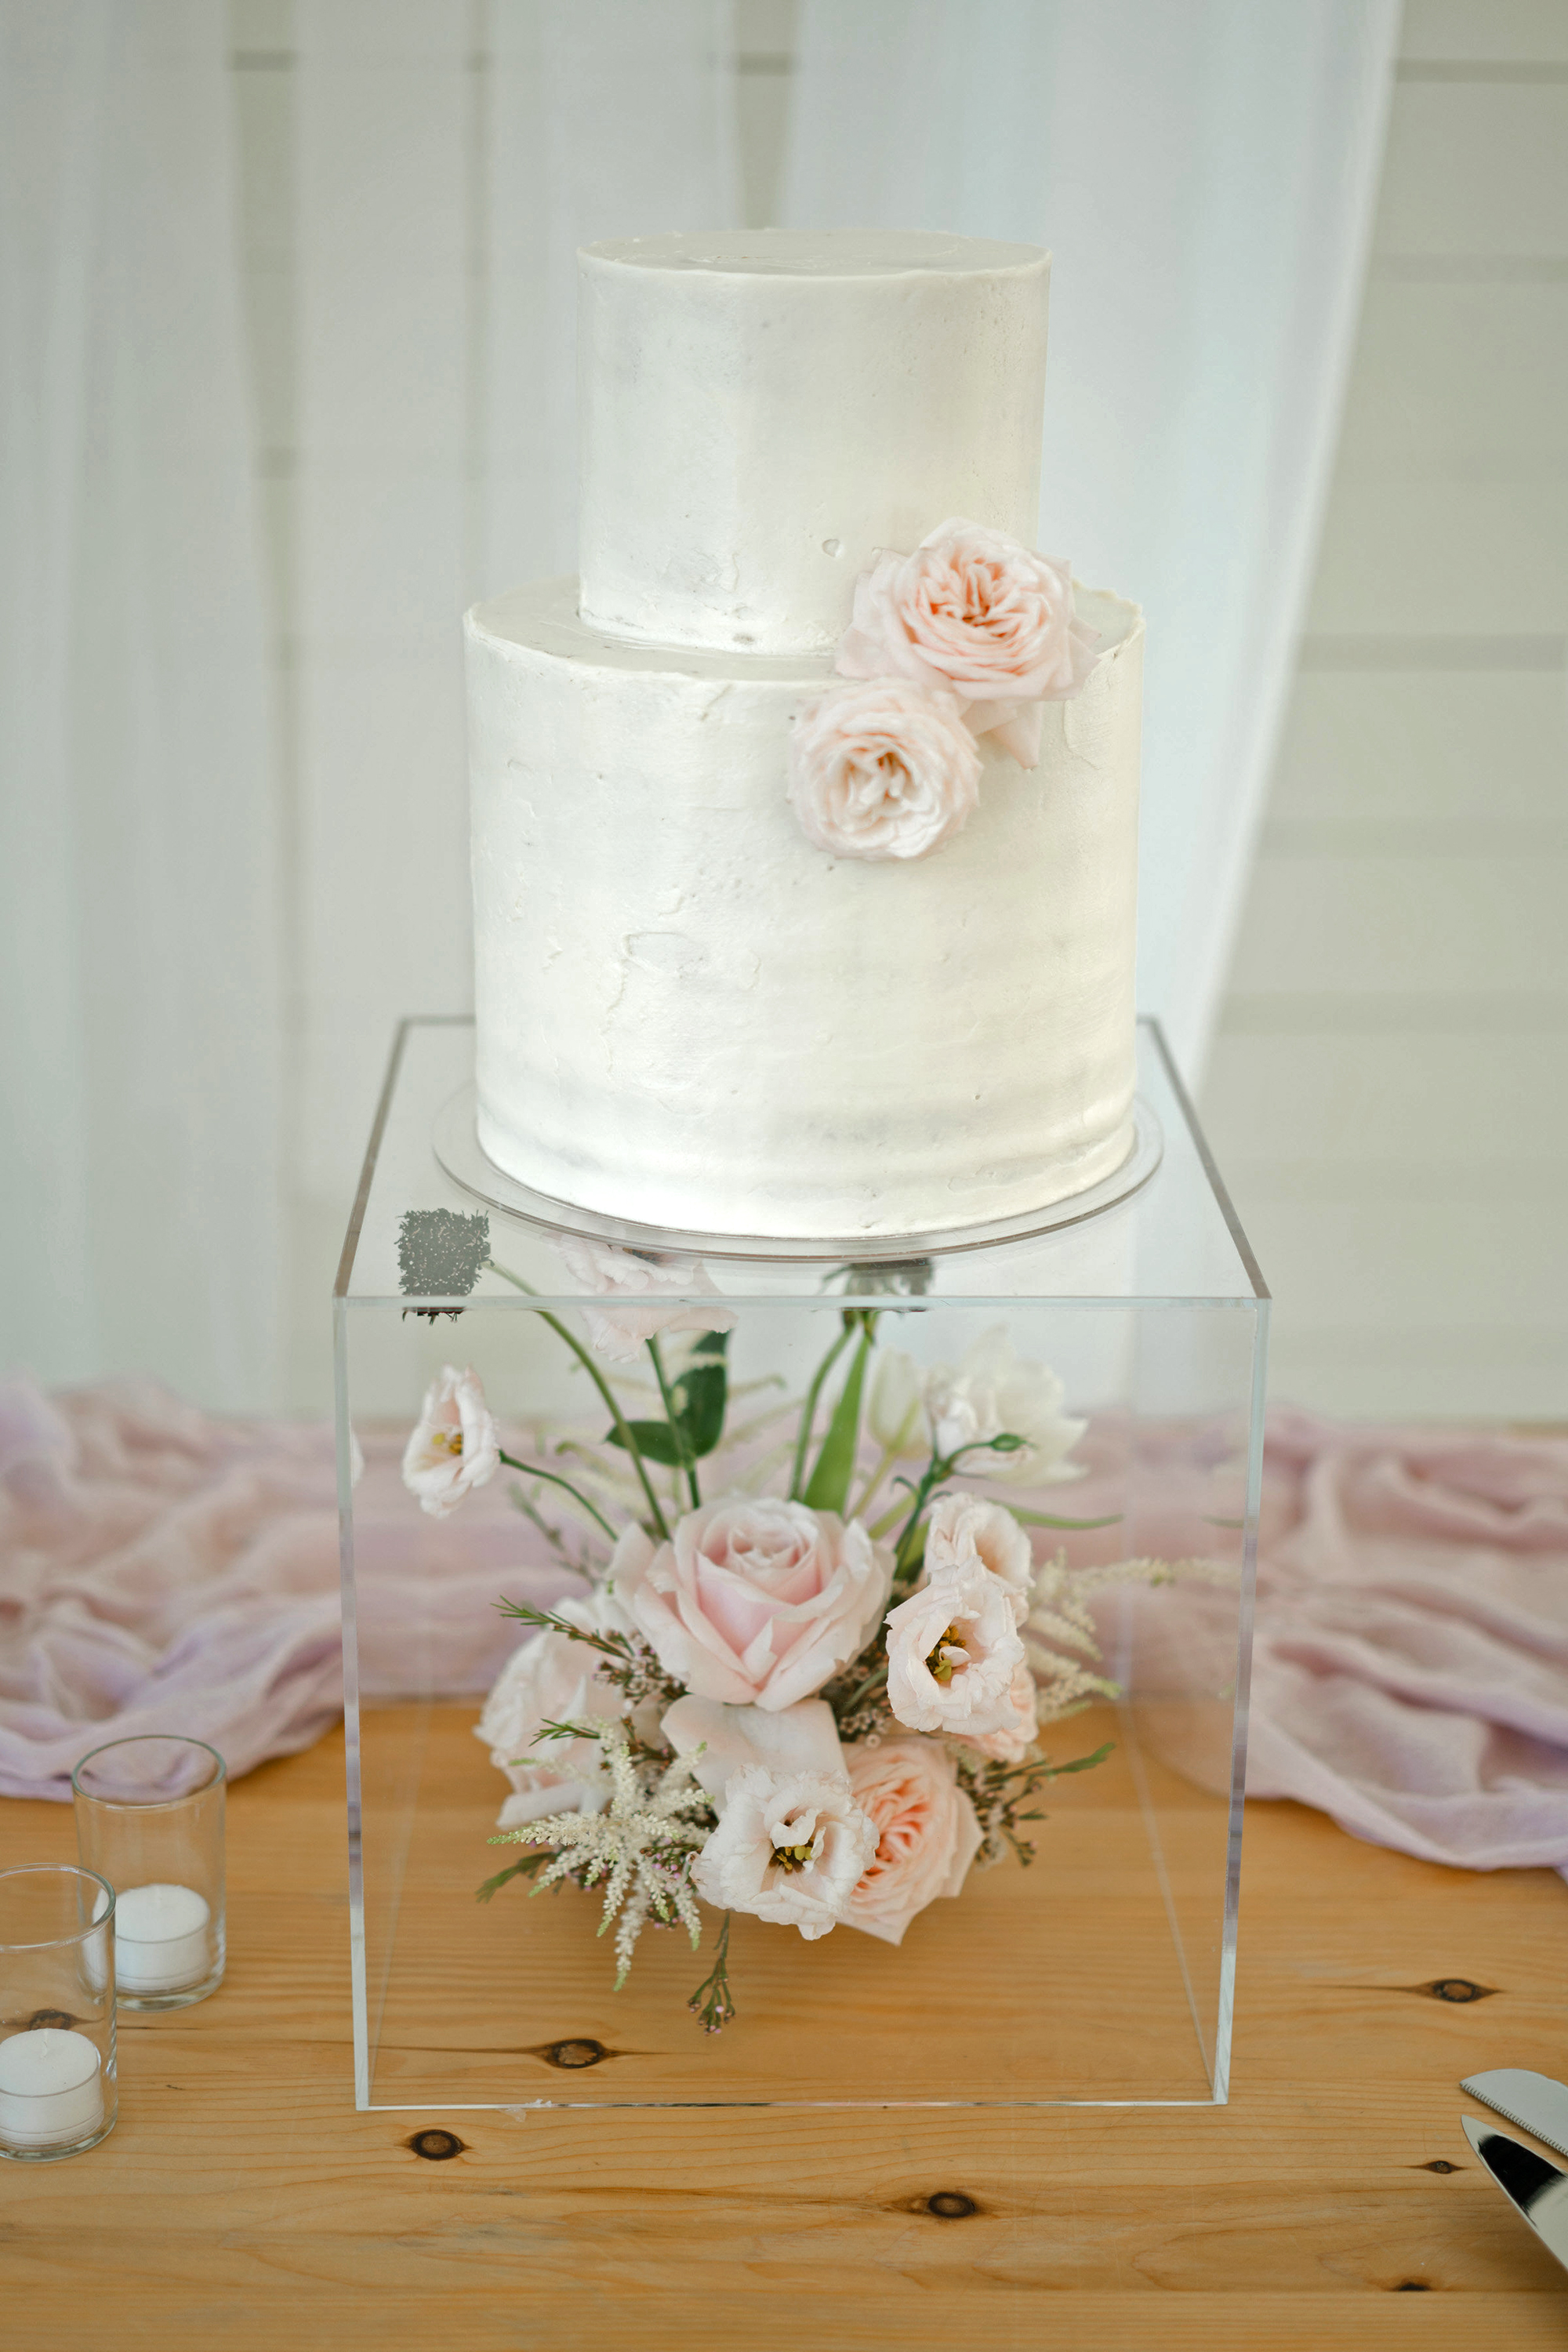 brittany peter wedding cake with light pink flowers